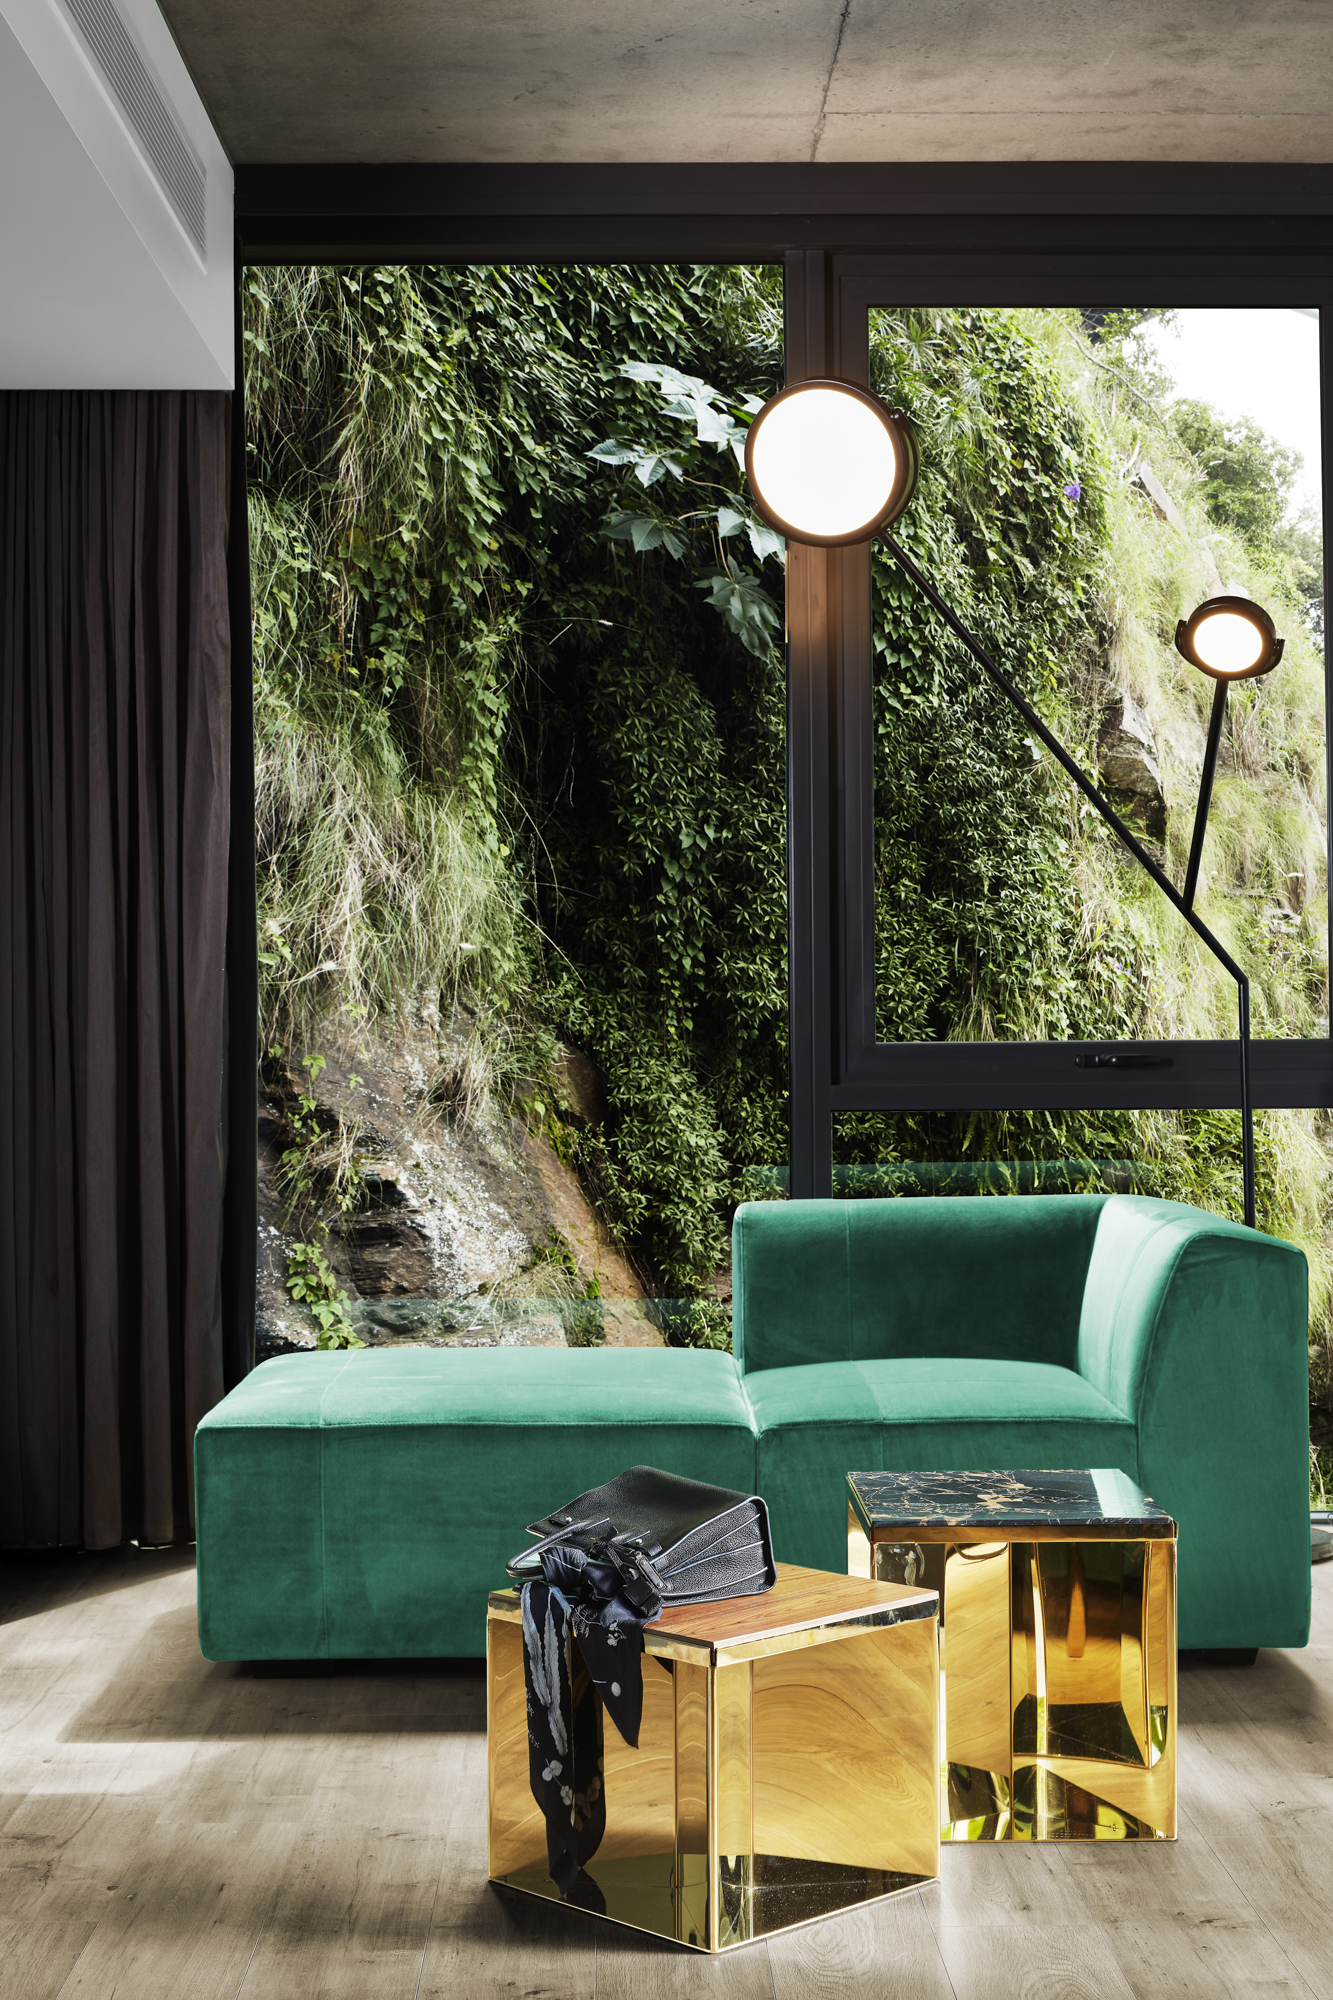 Design Secrets Of The Fantauzzo Hotel By Furn Niche The